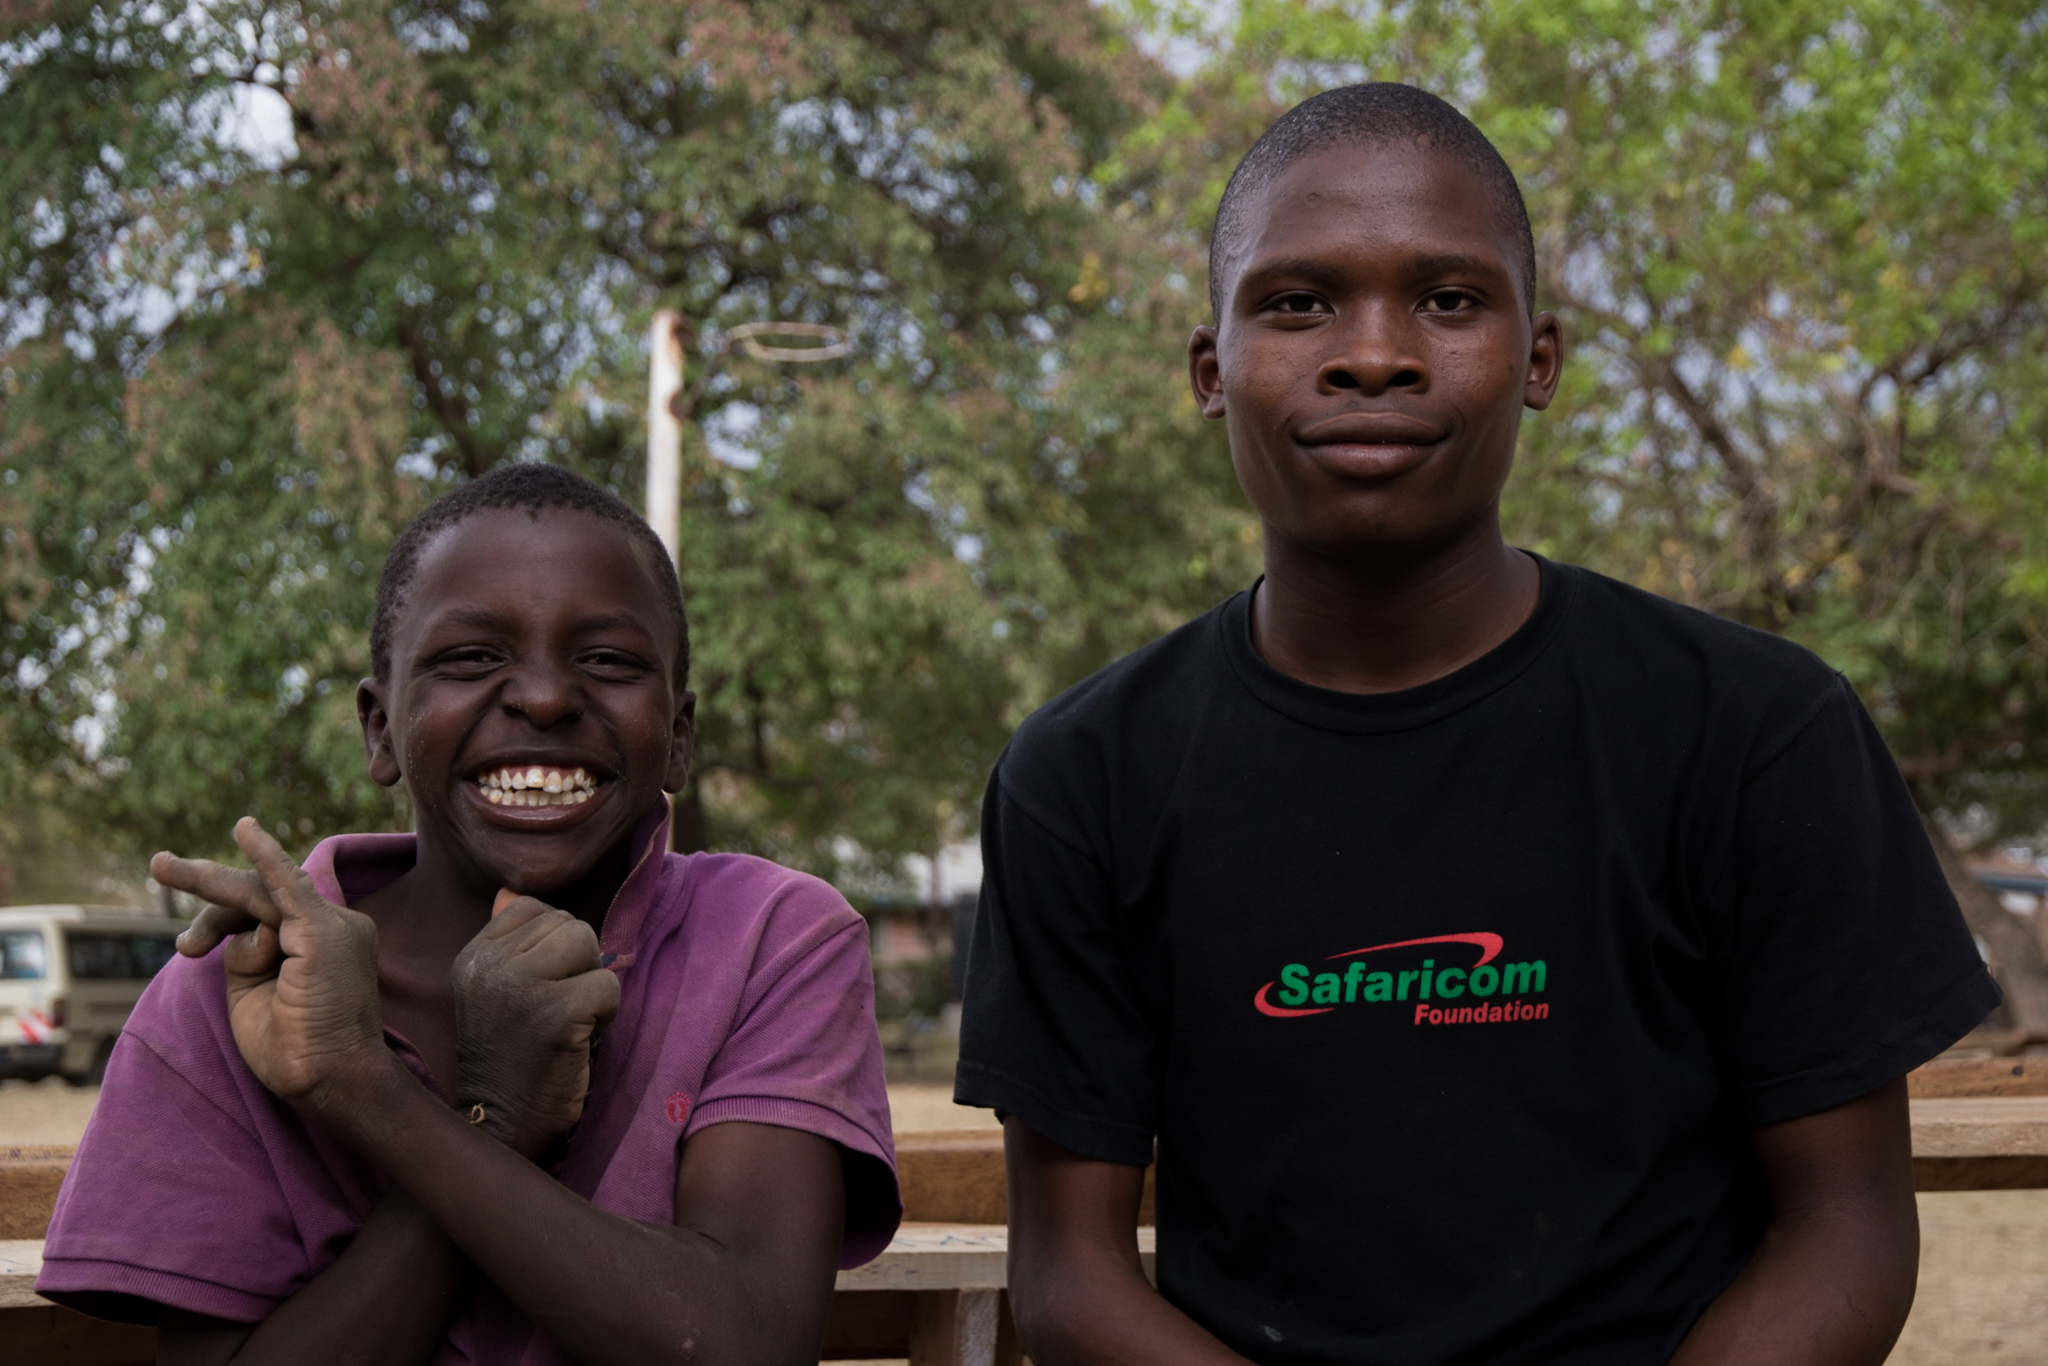 kenya_children_portrait-12.JPG